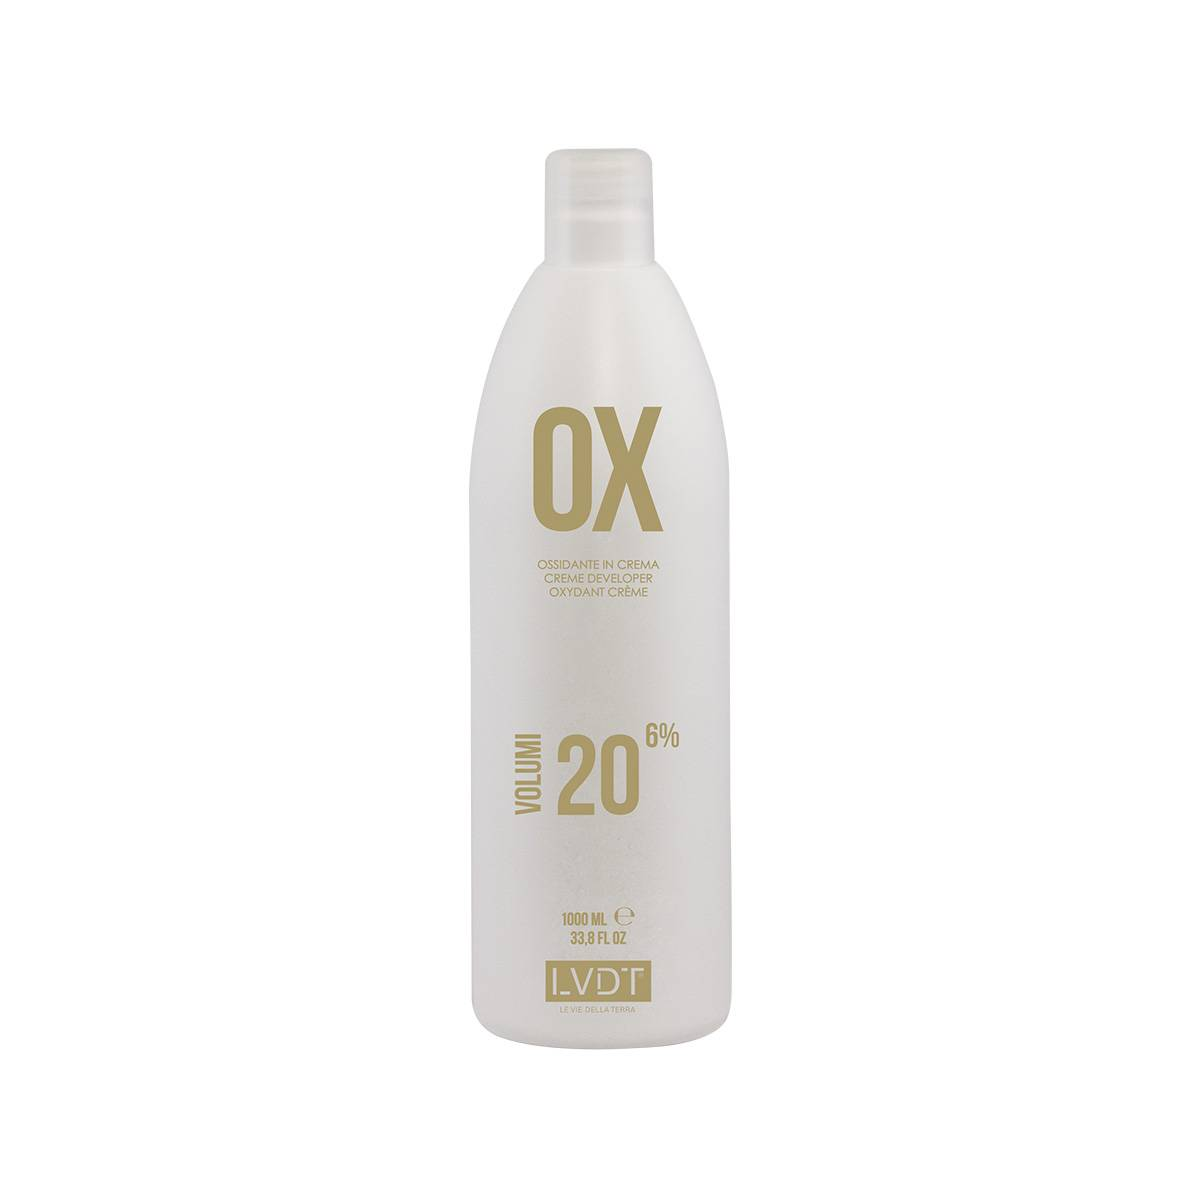 Lvdt Ossidante In Crema 20 Vol 1000 Ml